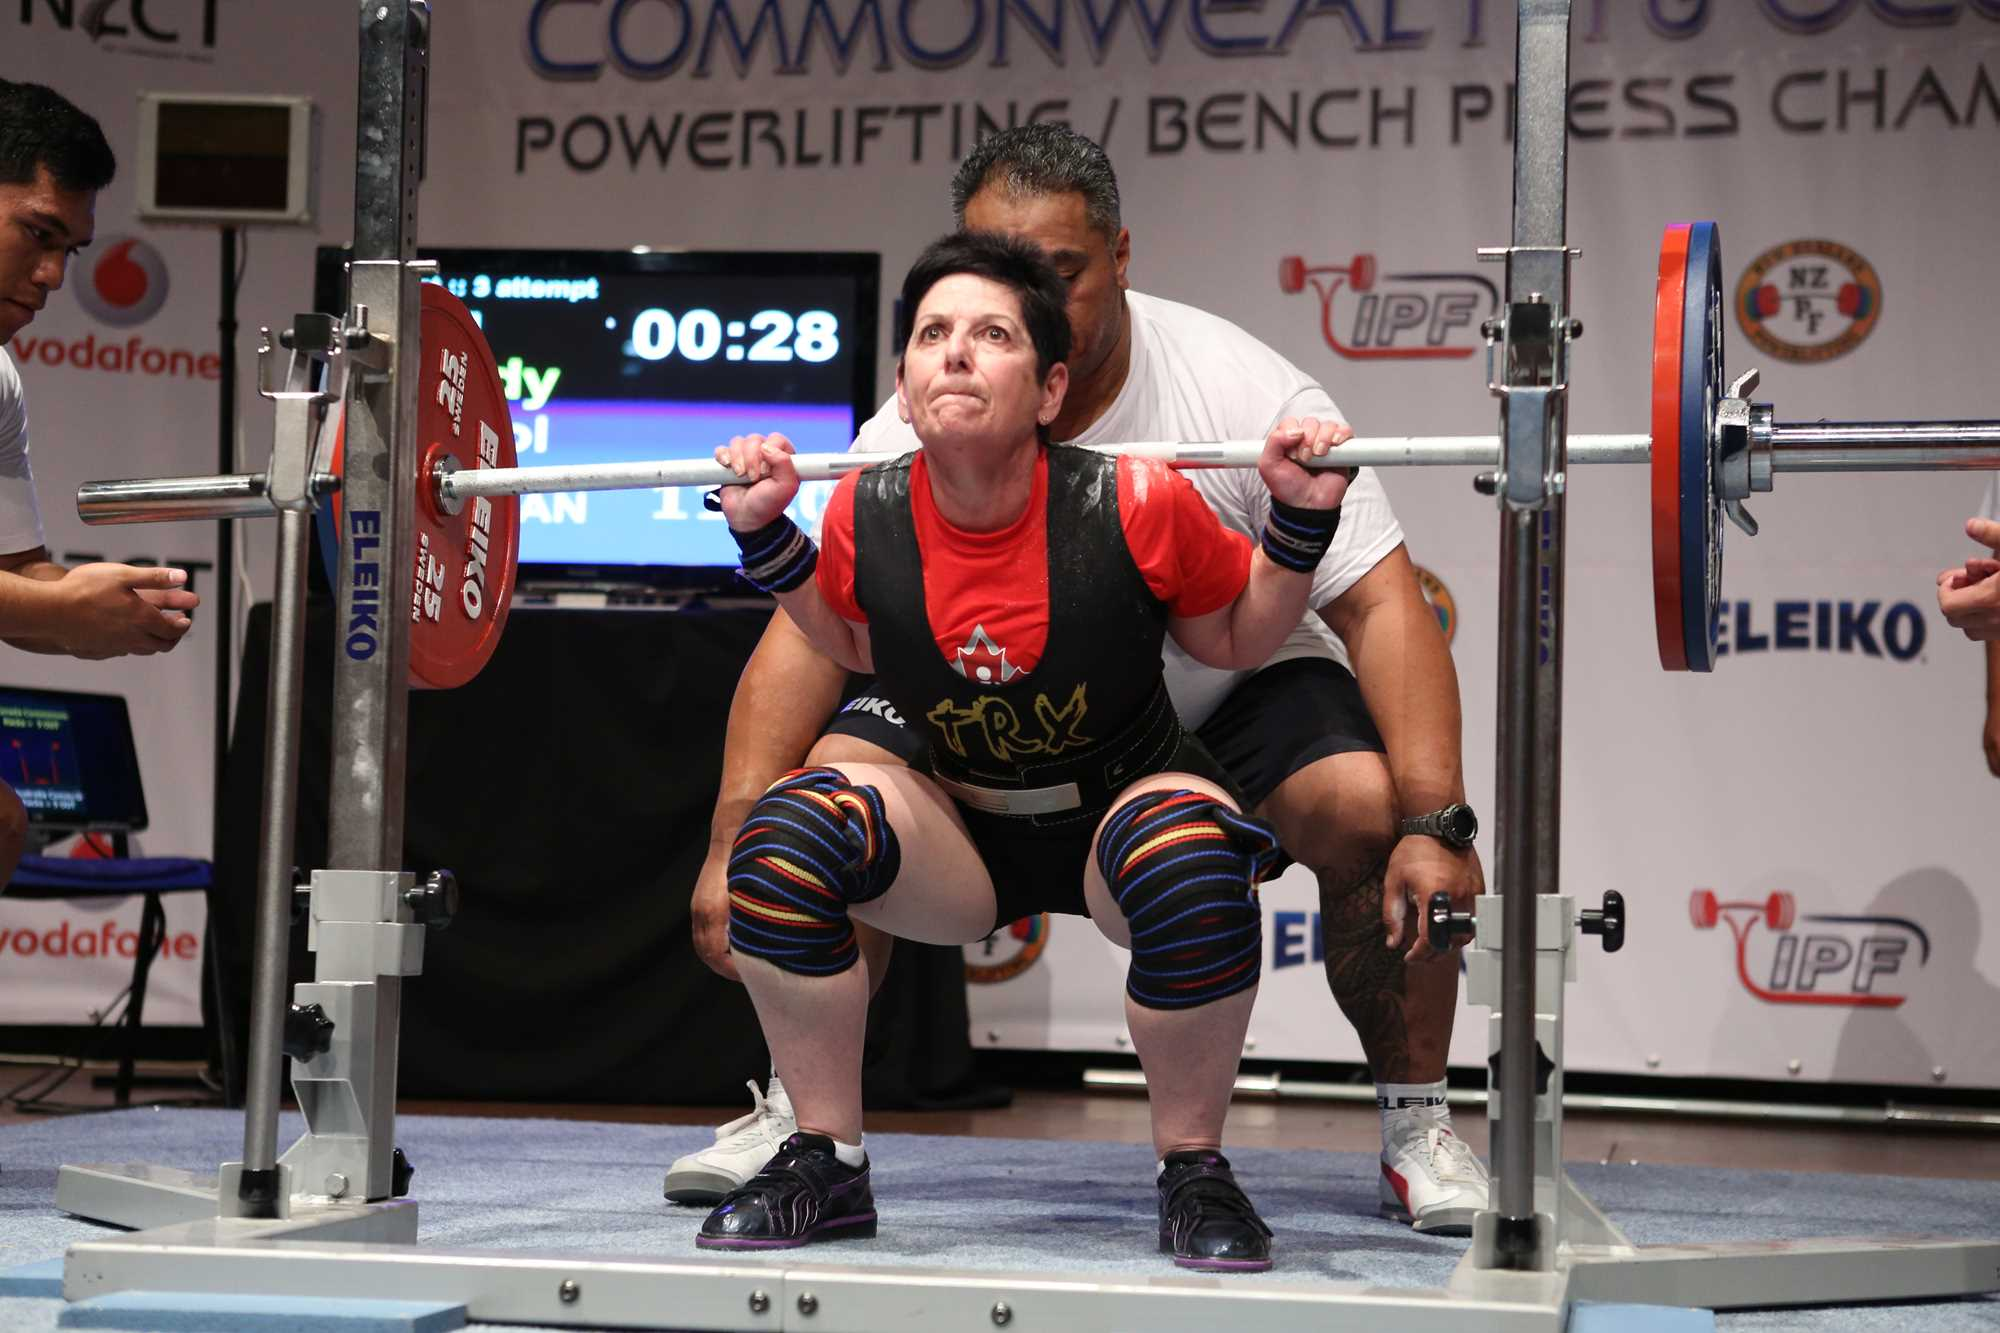 Wo womens bench press records by weight class - Newer Older